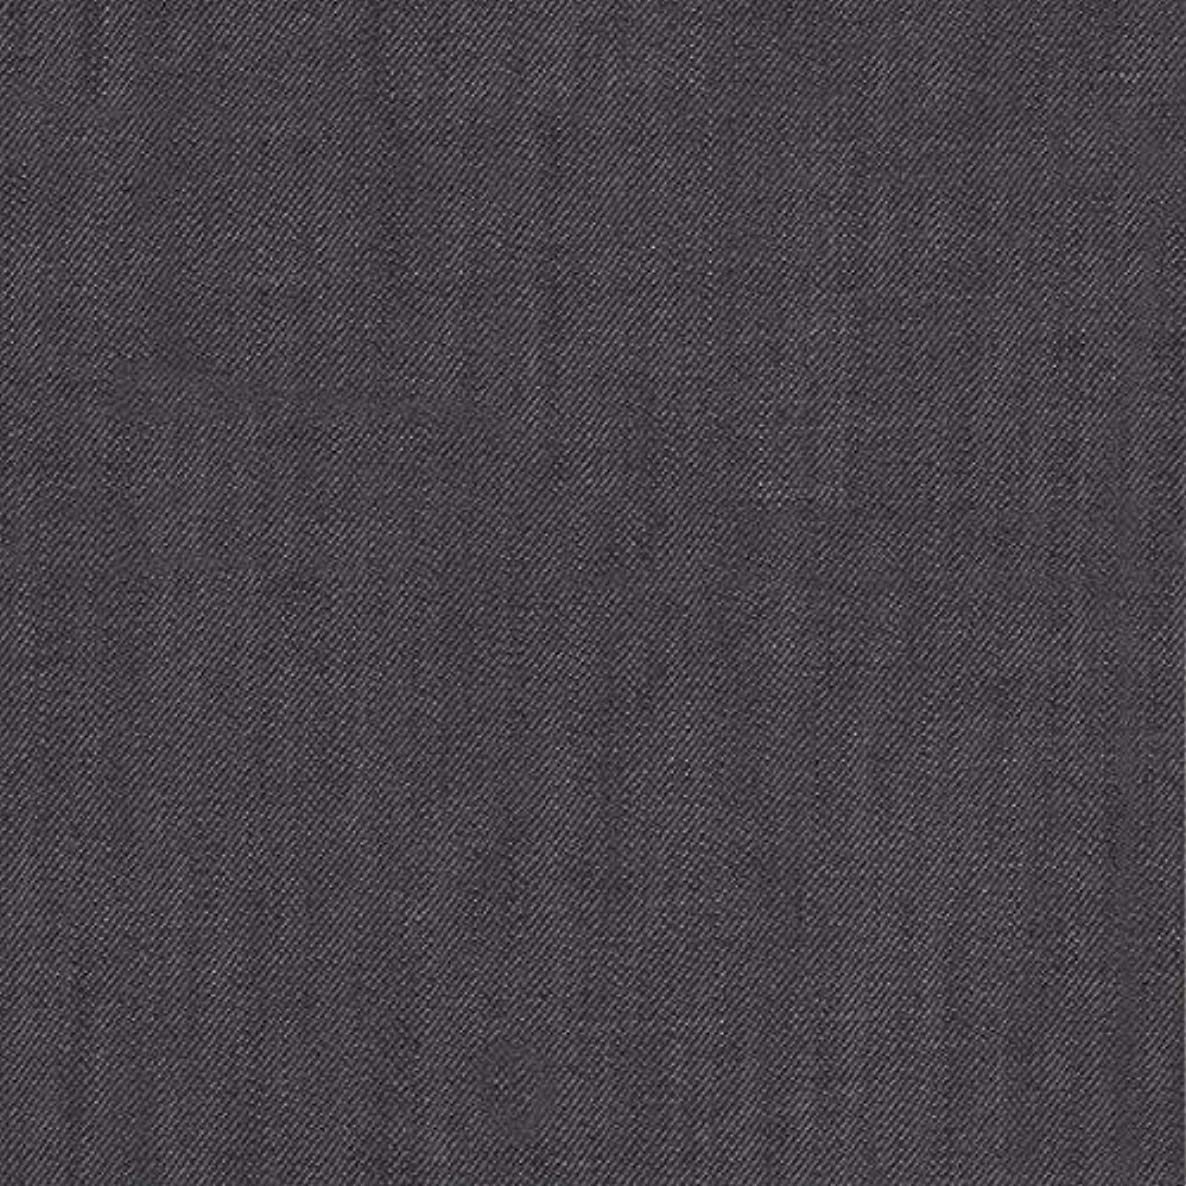 Stretch Cotton Denim Fabric by The Yard (Charcoal 9 oz)